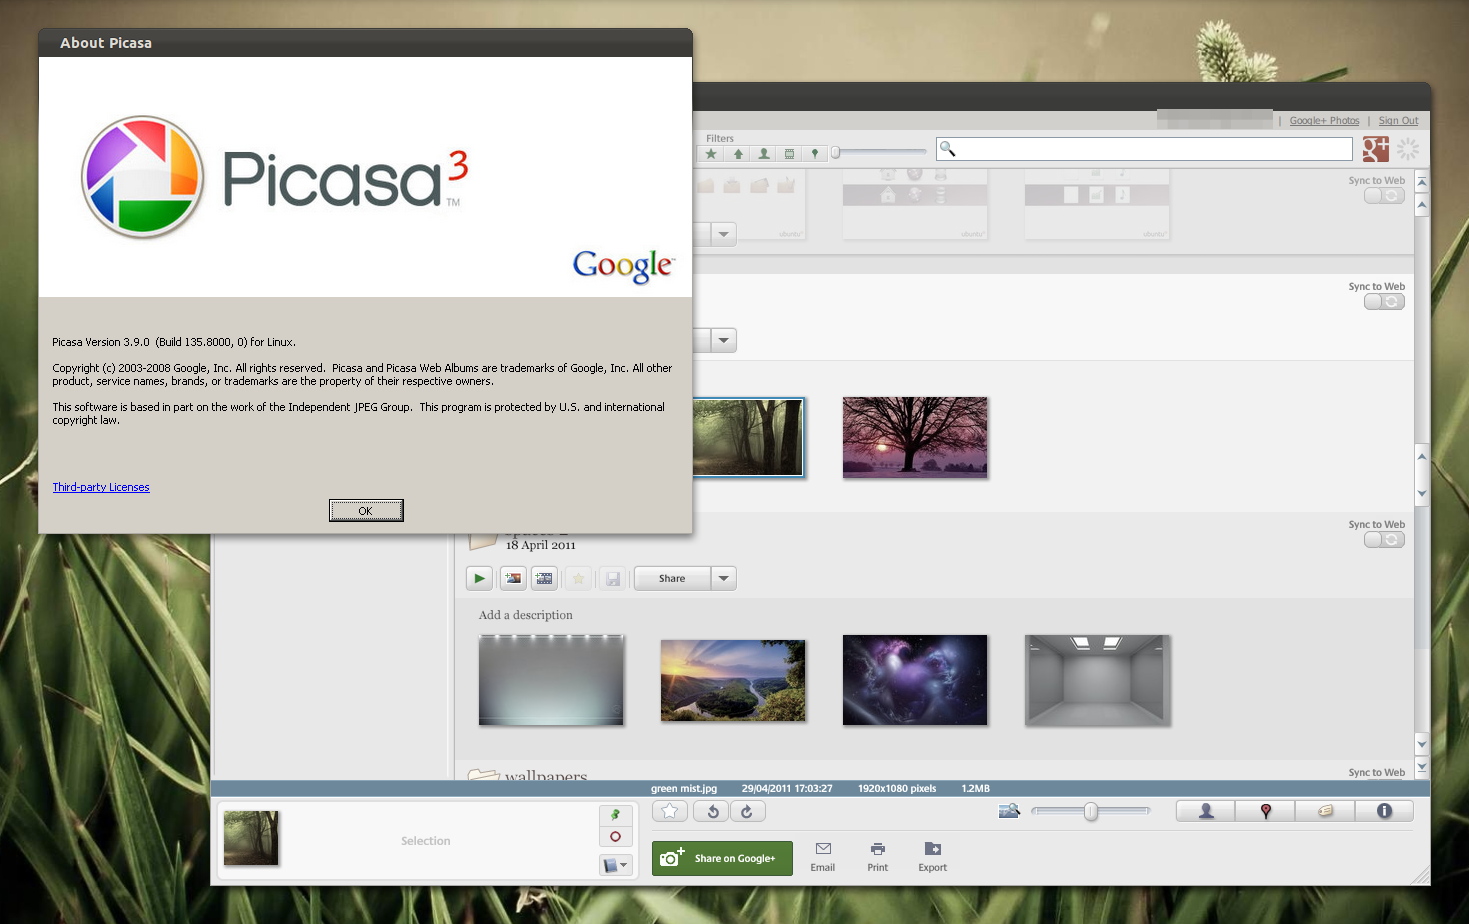 Install Picasa 3 9 In Linux And Fix Google Sign In Issue